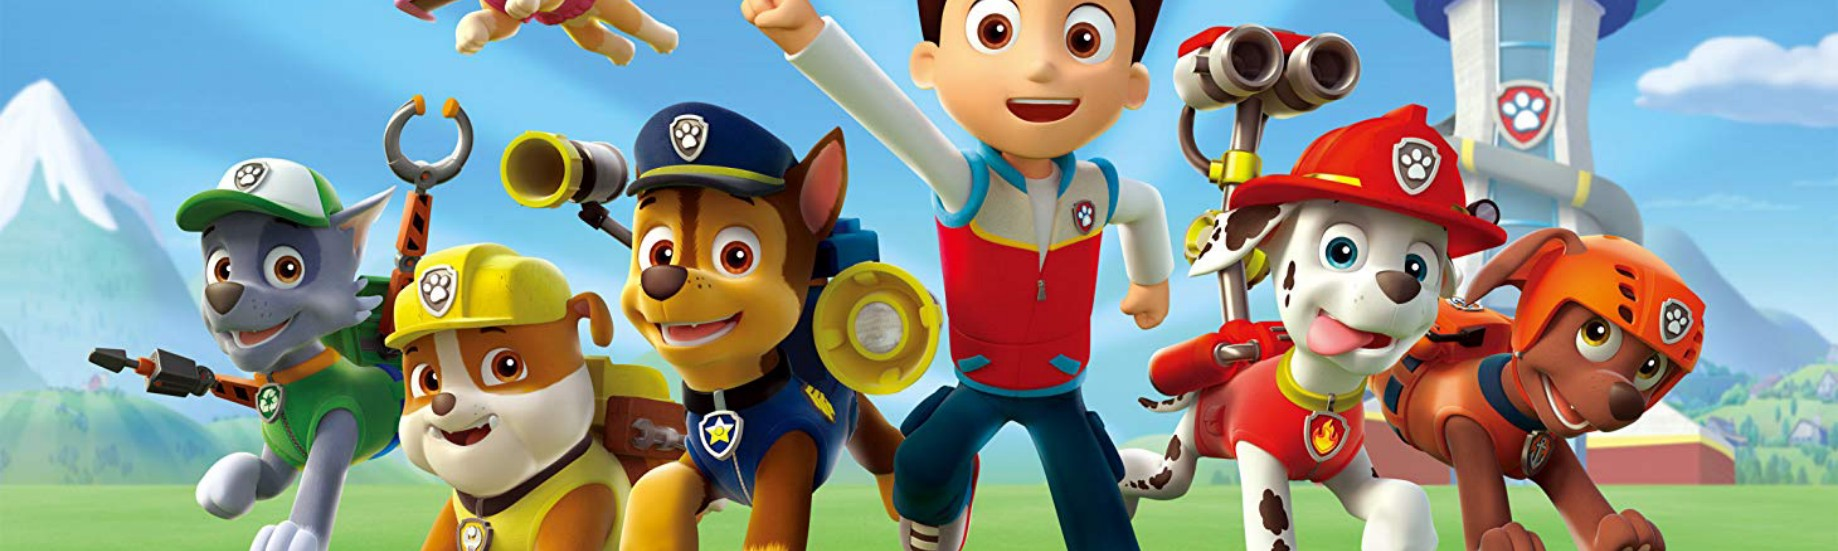 The Misogyny and Authoritarianism of 'Paw Patrol' - Featured Stories